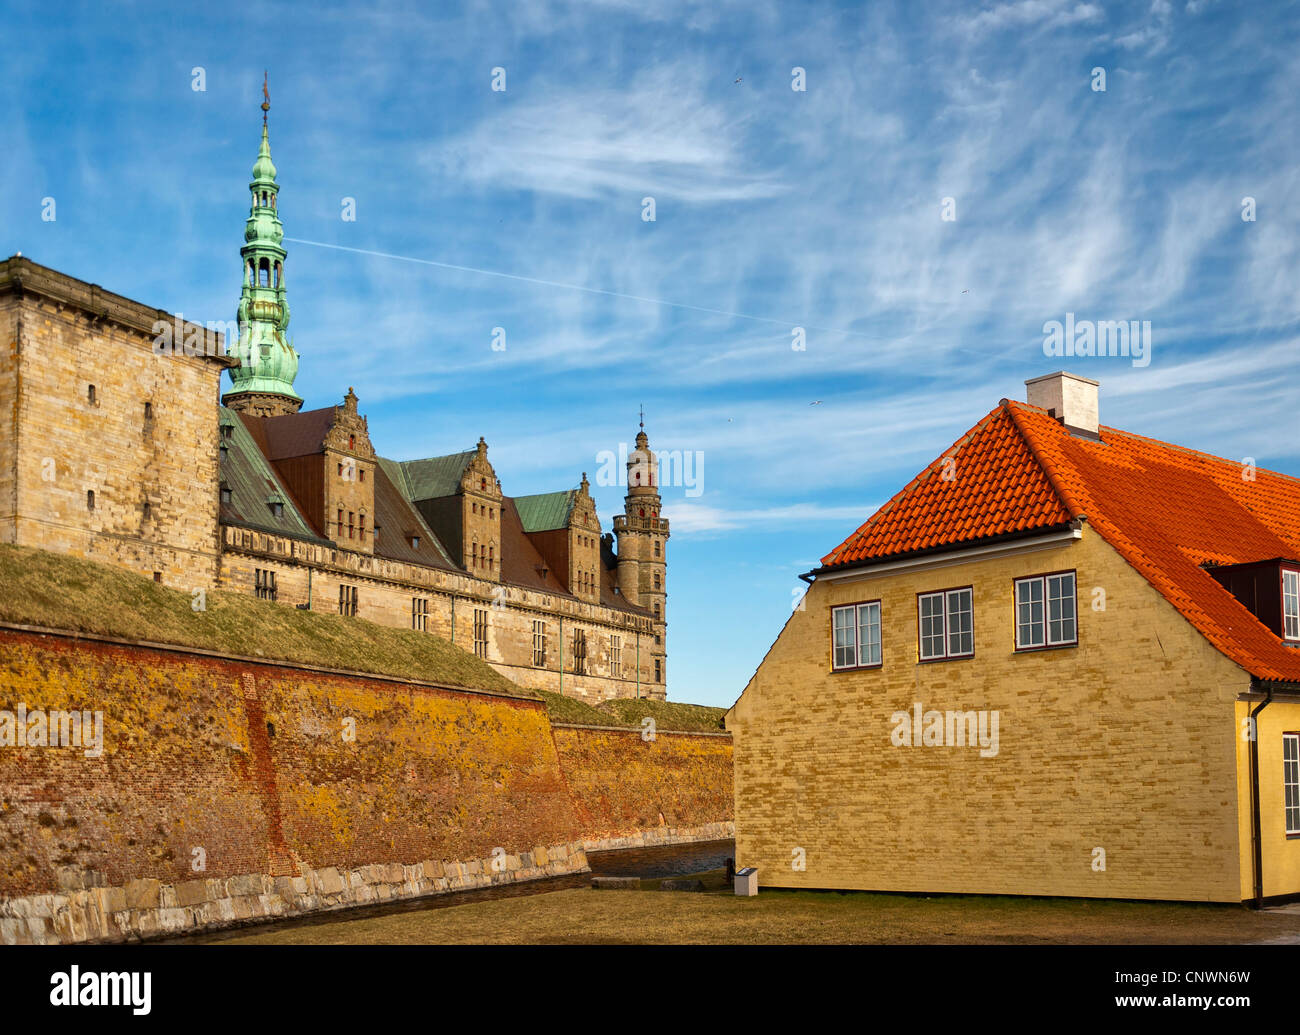 The renaissance Kronberg castle situated in the Danish town of Helsingor. - Stock Image